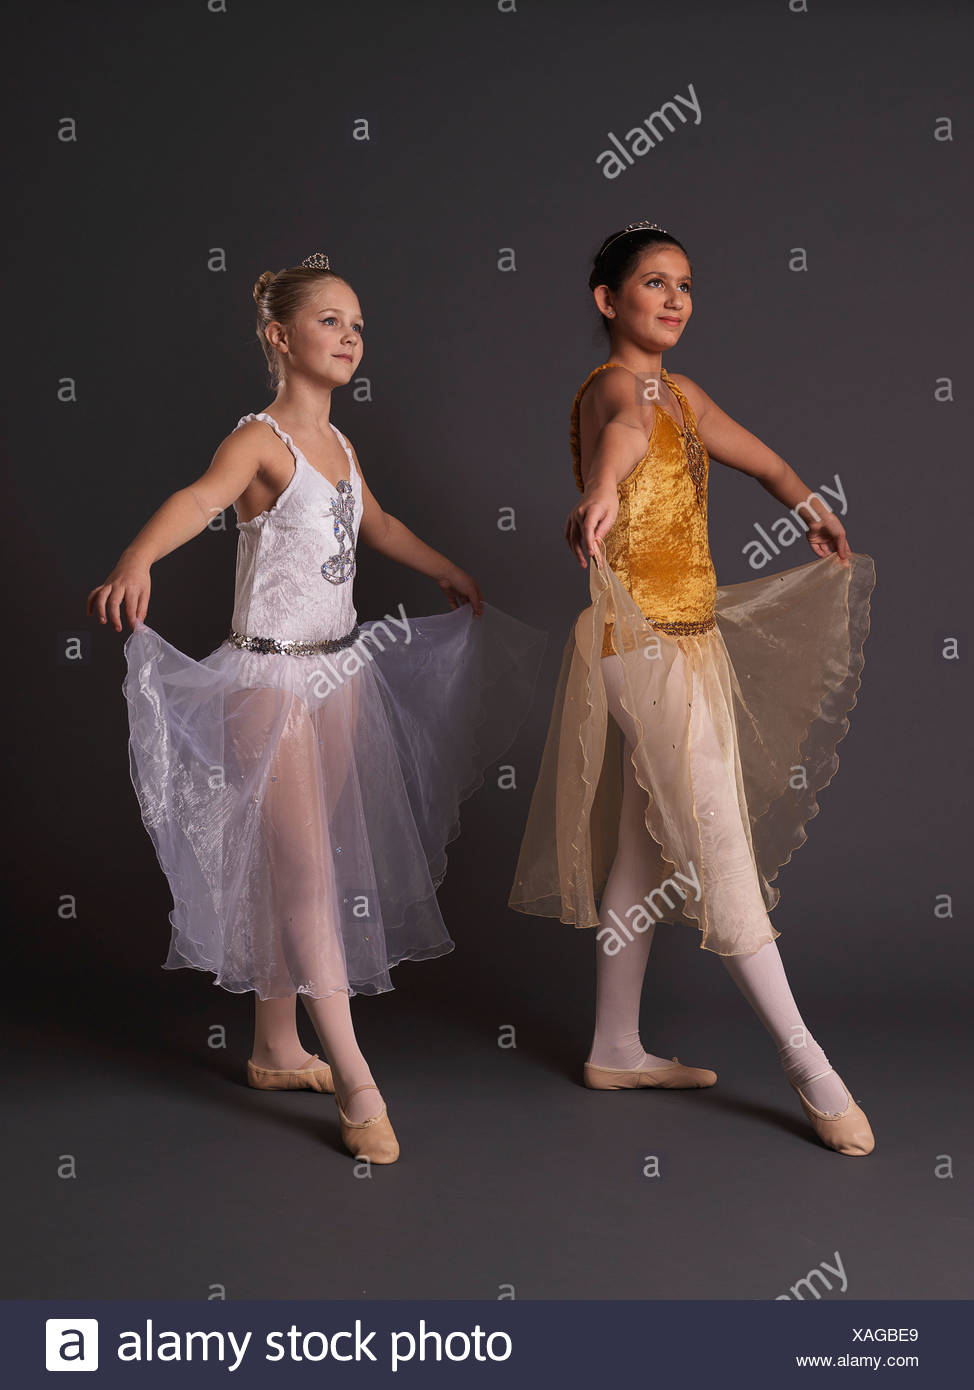 Two ballerinas facing camera left. - Stock Image